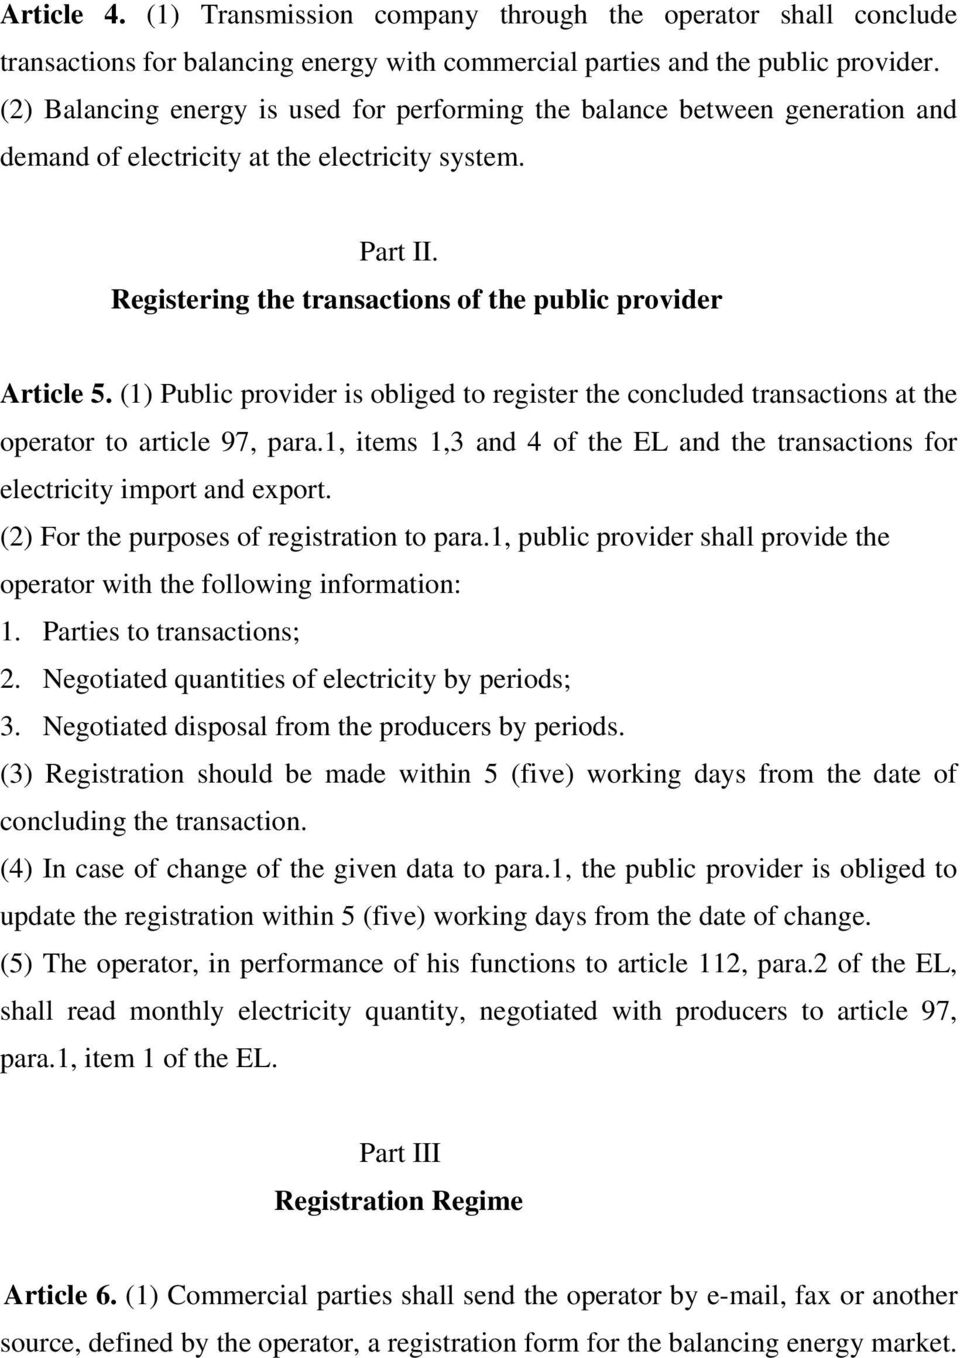 (1) Public provider is obliged to register the concluded transactions at the operator to article 97, para.1, items 1,3 and 4 of the EL and the transactions for electricity import and export.